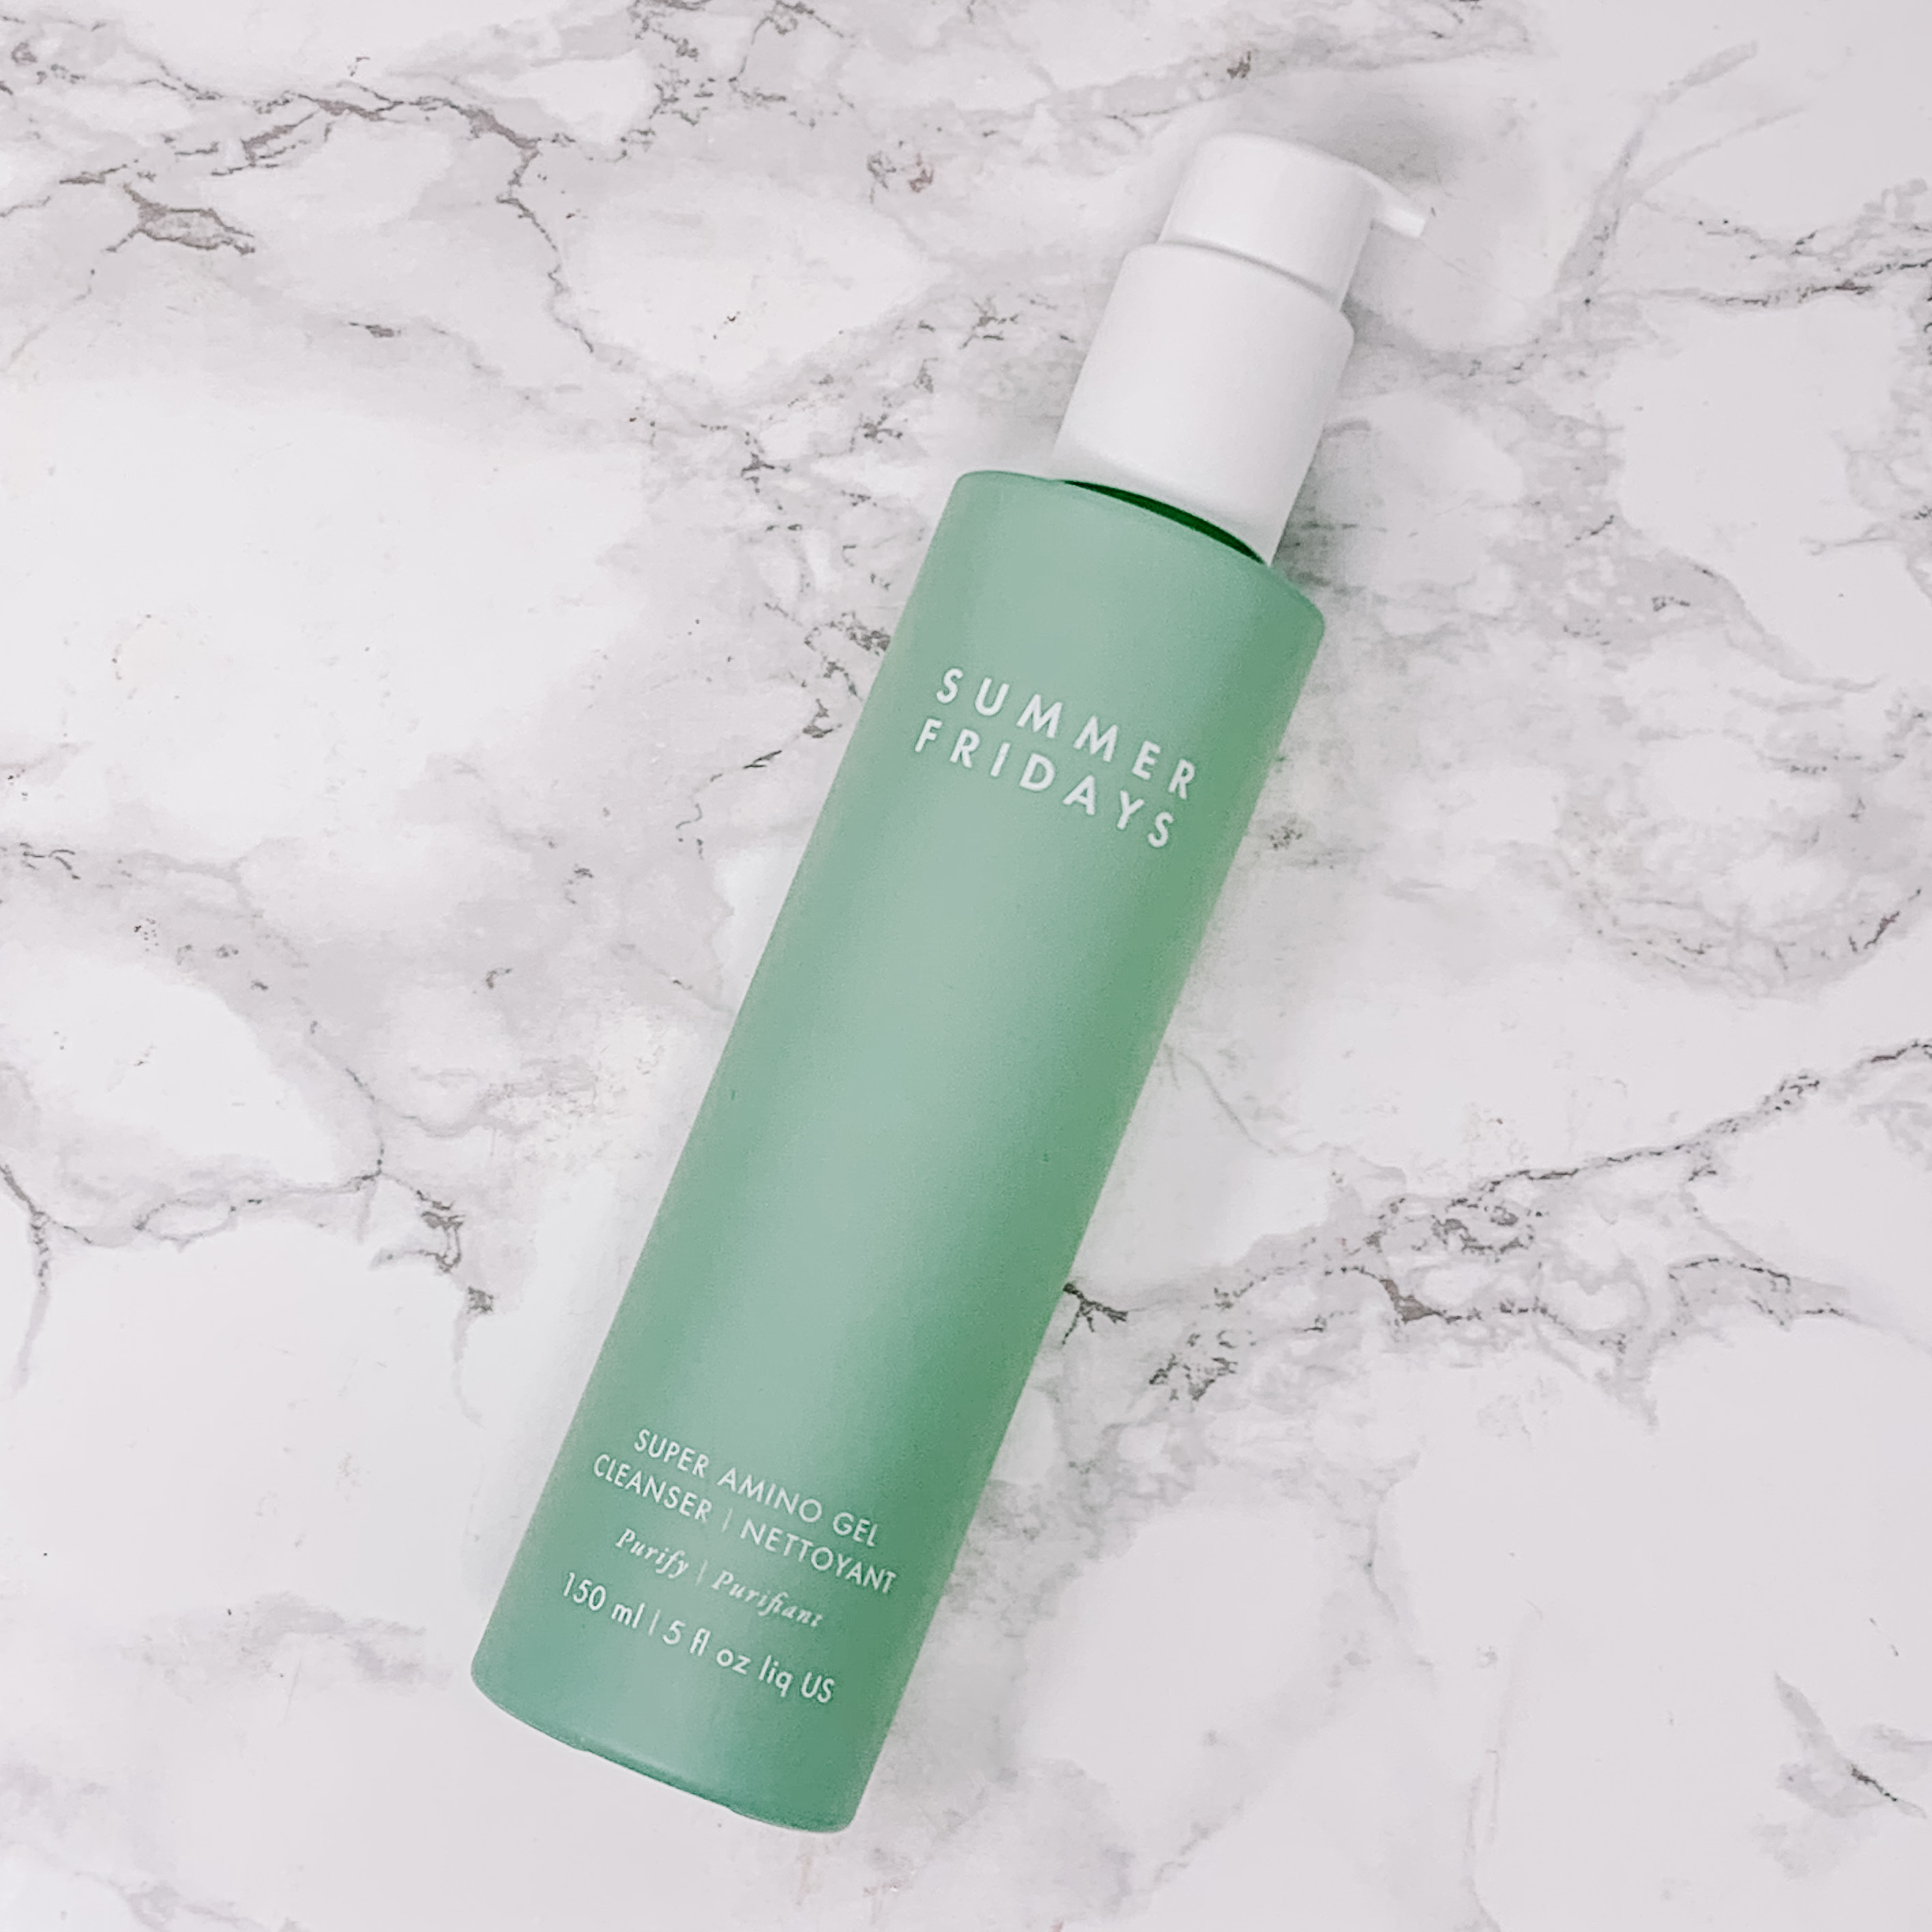 Summer Fridays Cleanser Review